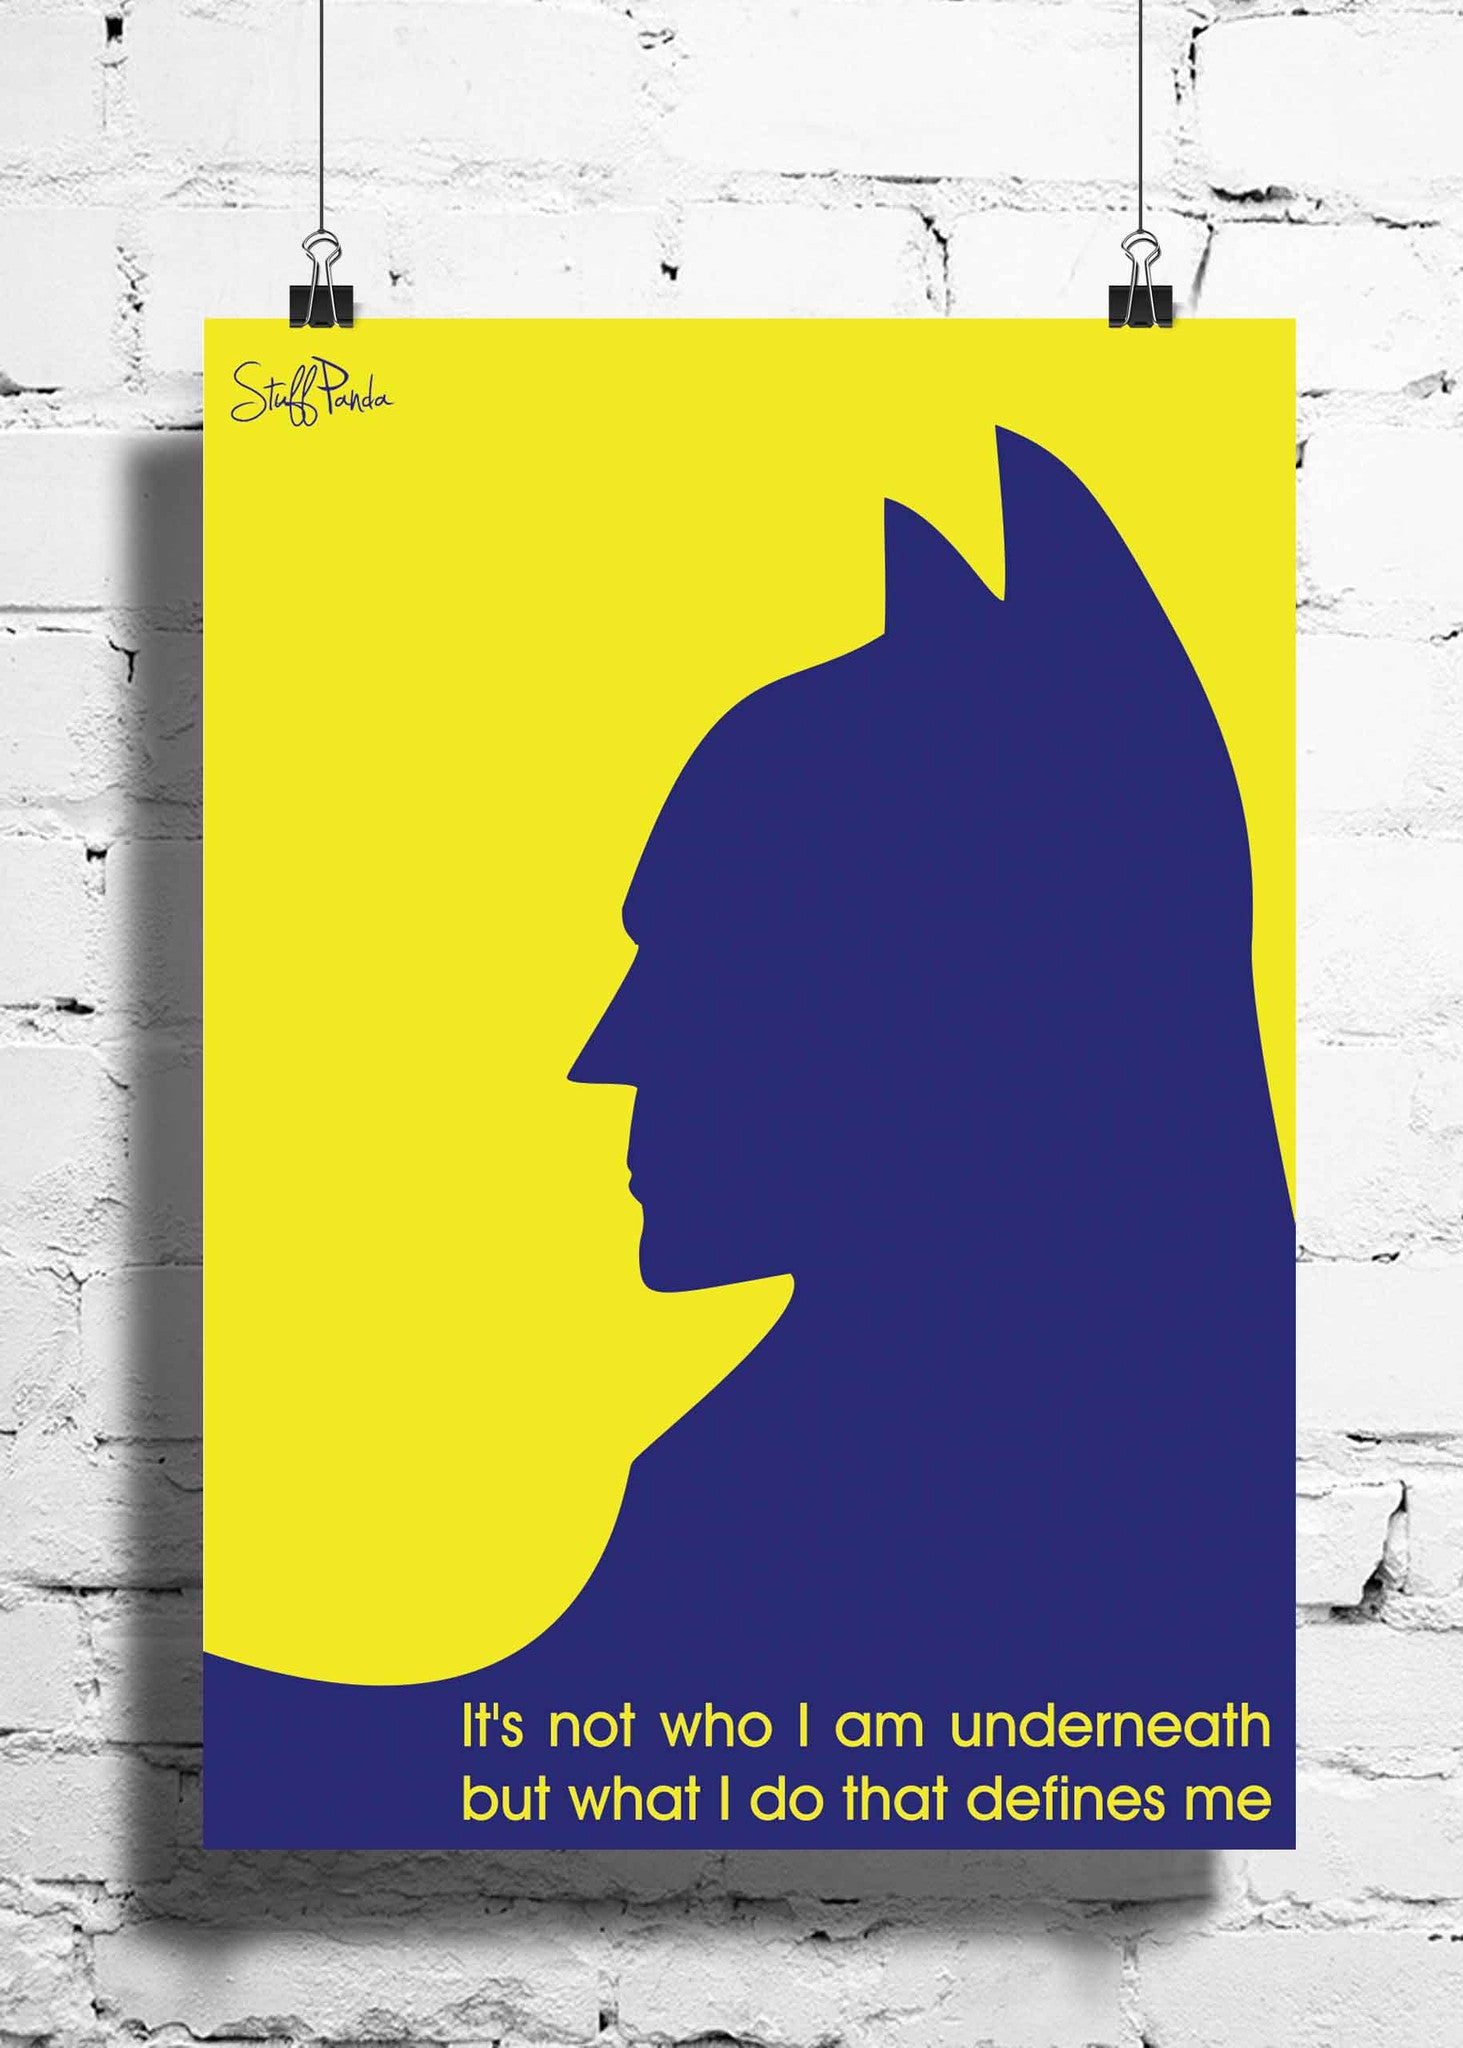 Cool Funky Batman Yellow Blue wall posters, art prints, stickers ...